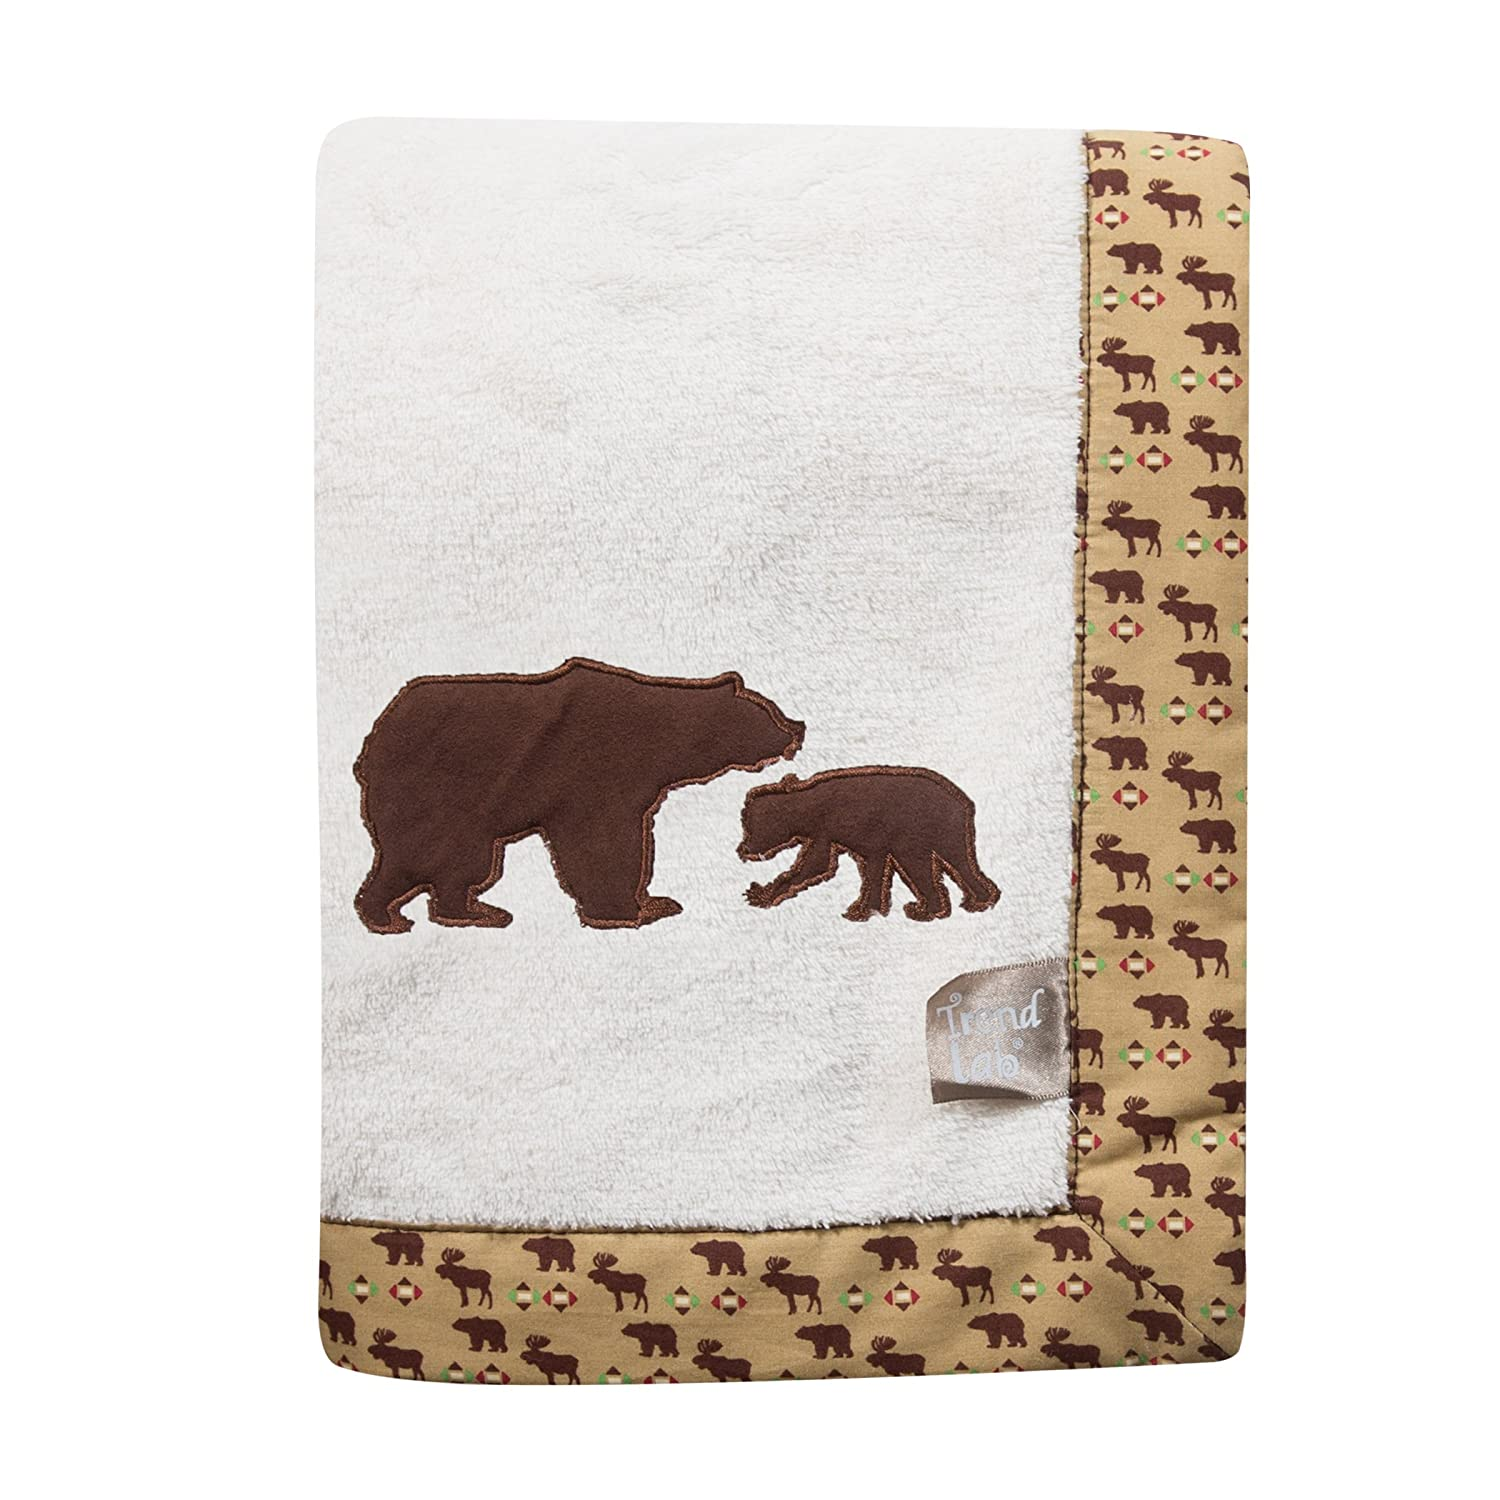 Trend Lab Northwoods Framed Receiving Blanket, Bears Applique 100275